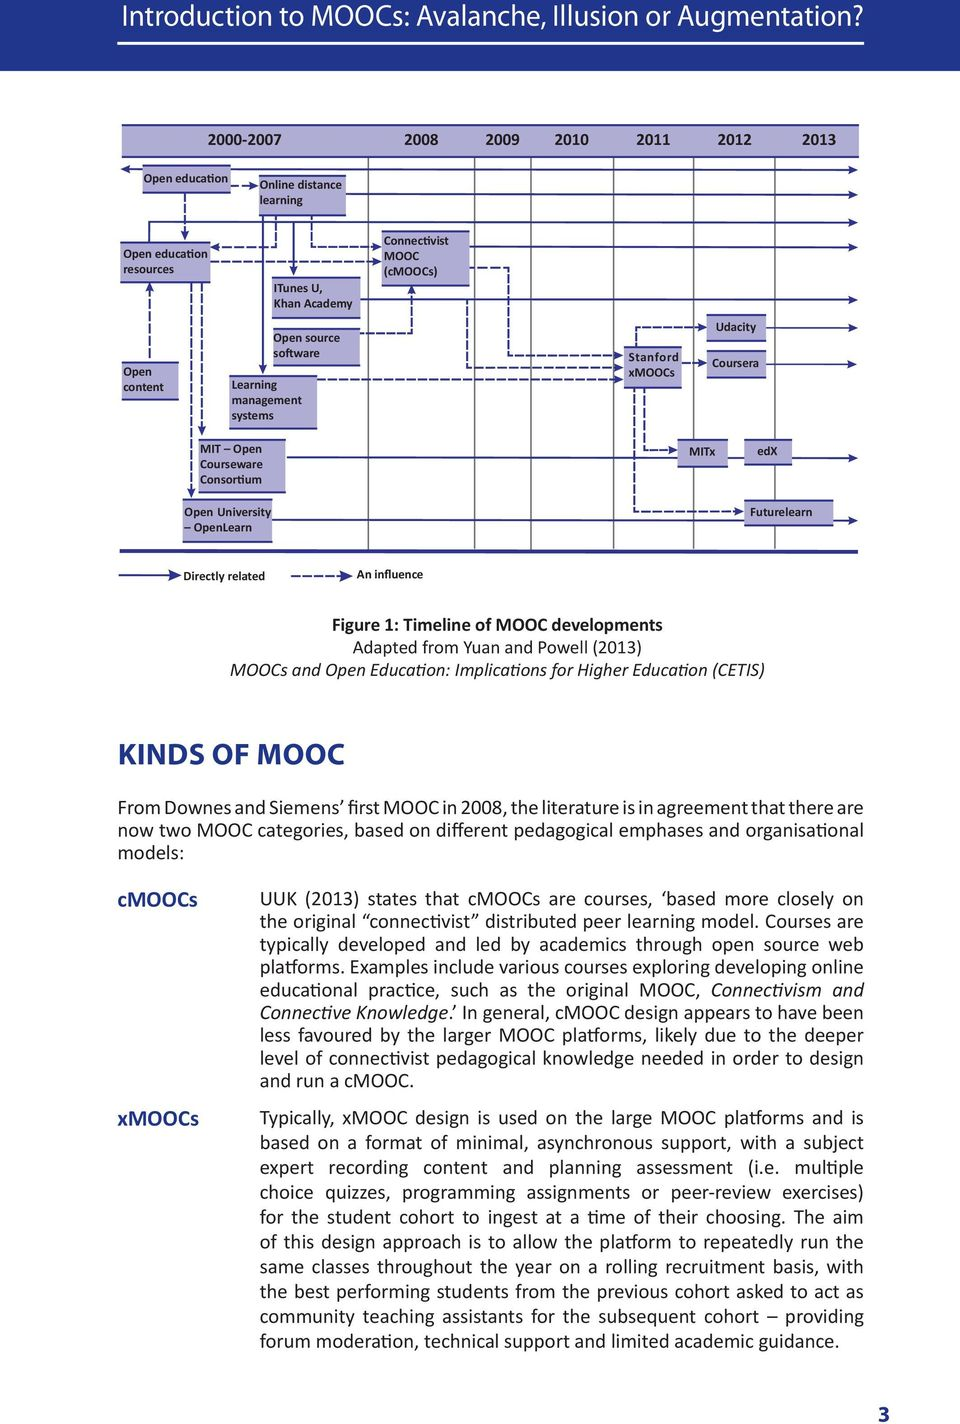 management systems Stanford xmoocs Udacity Coursera MIT Open Courseware Consortium Open University OpenLearn MITx edx Futurelearn Directly related An influence Figure 1: Timeline of MOOC developments